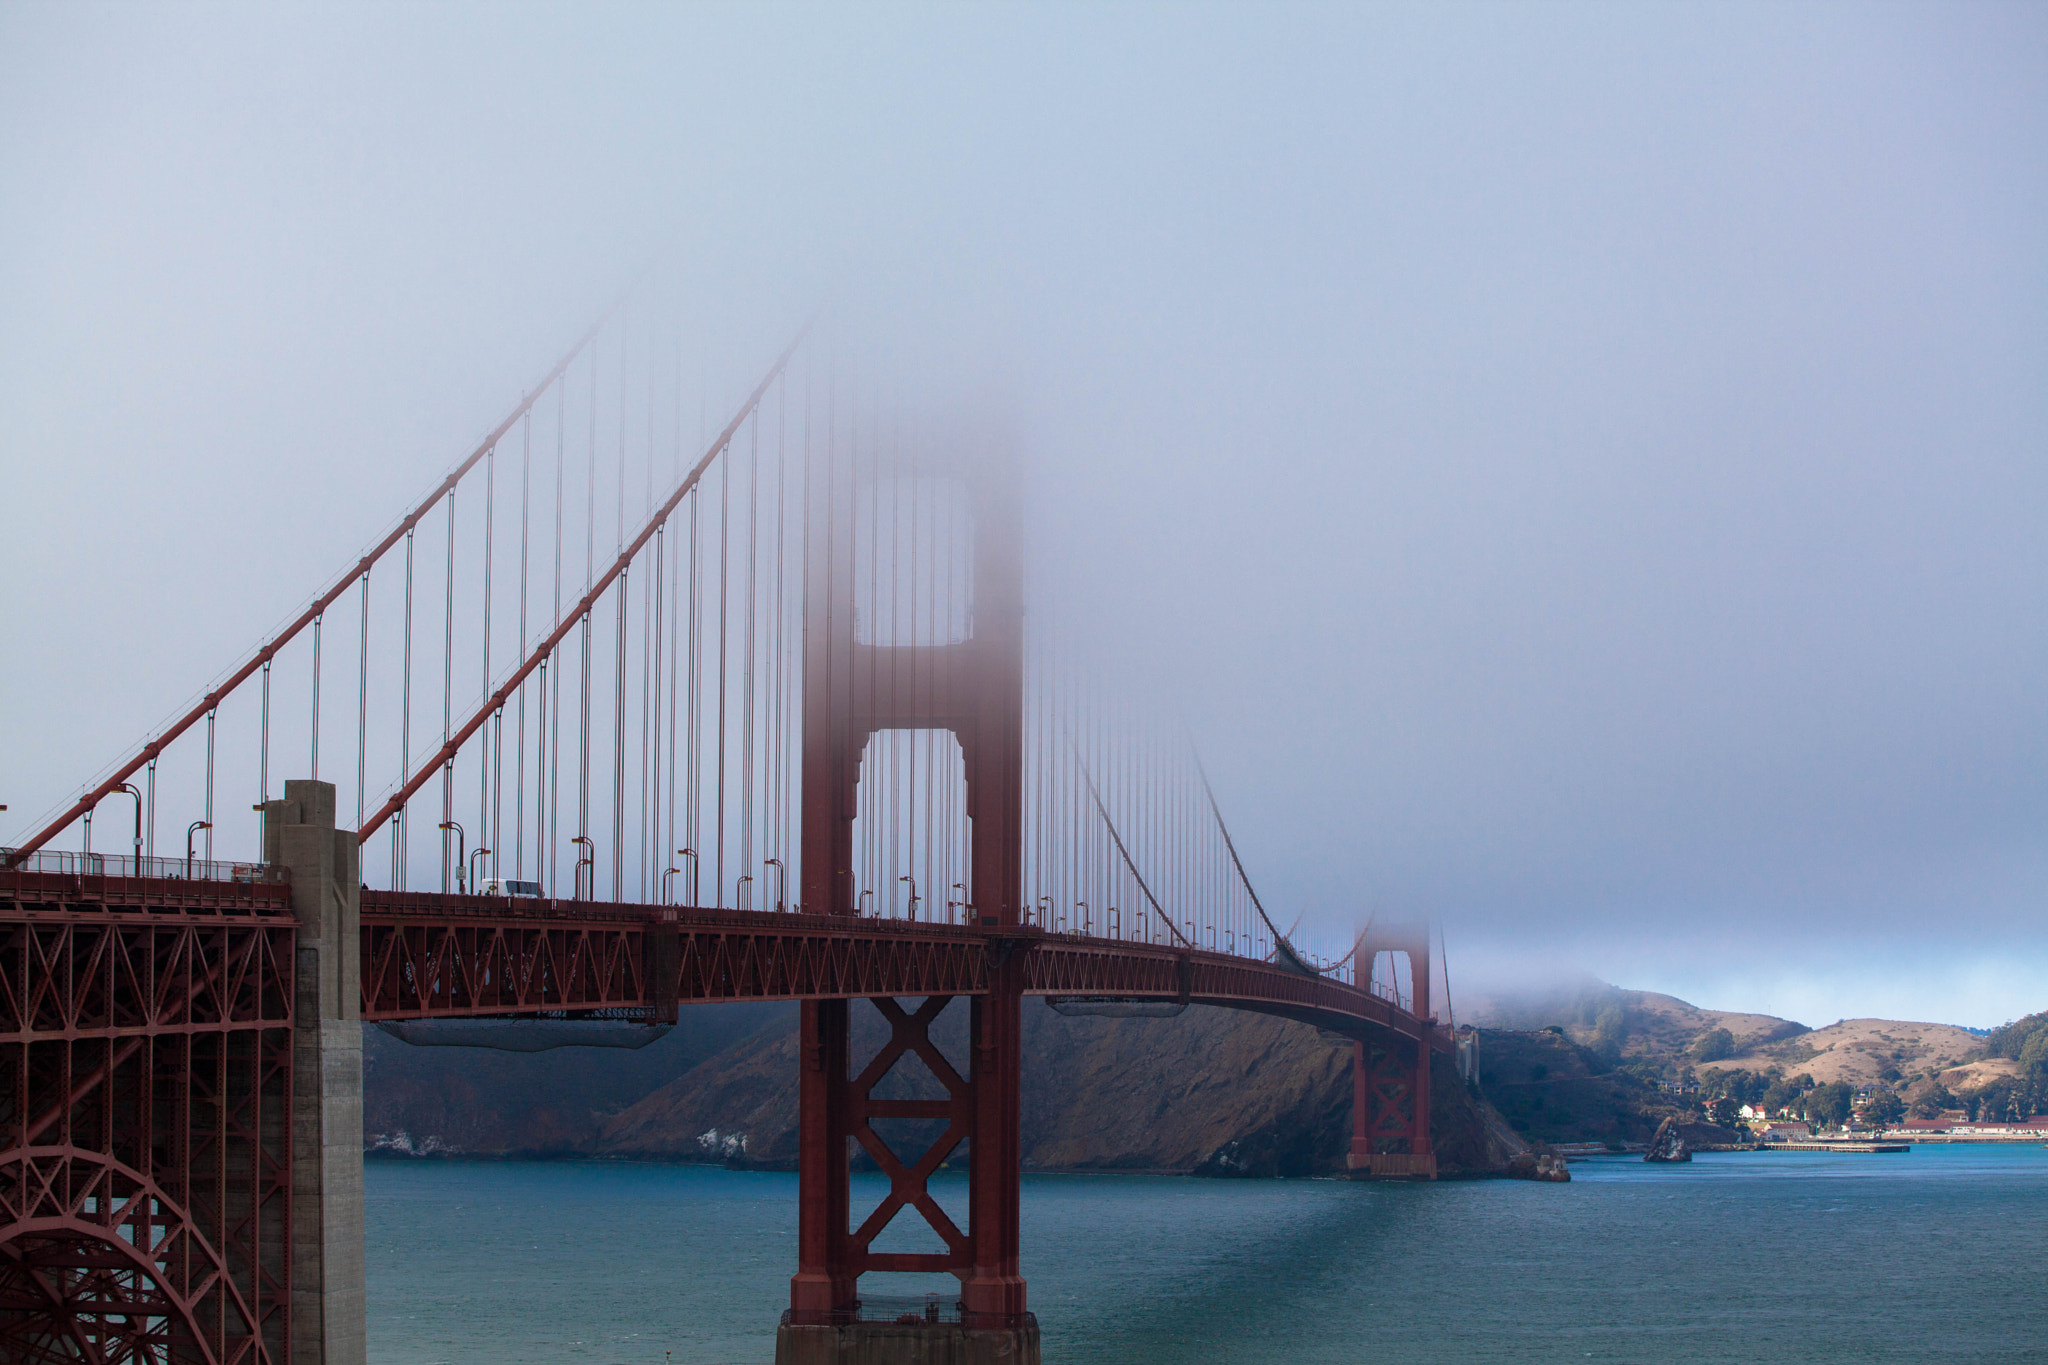 Photograph Golden Gate, SF by Diego Peralta on 500px